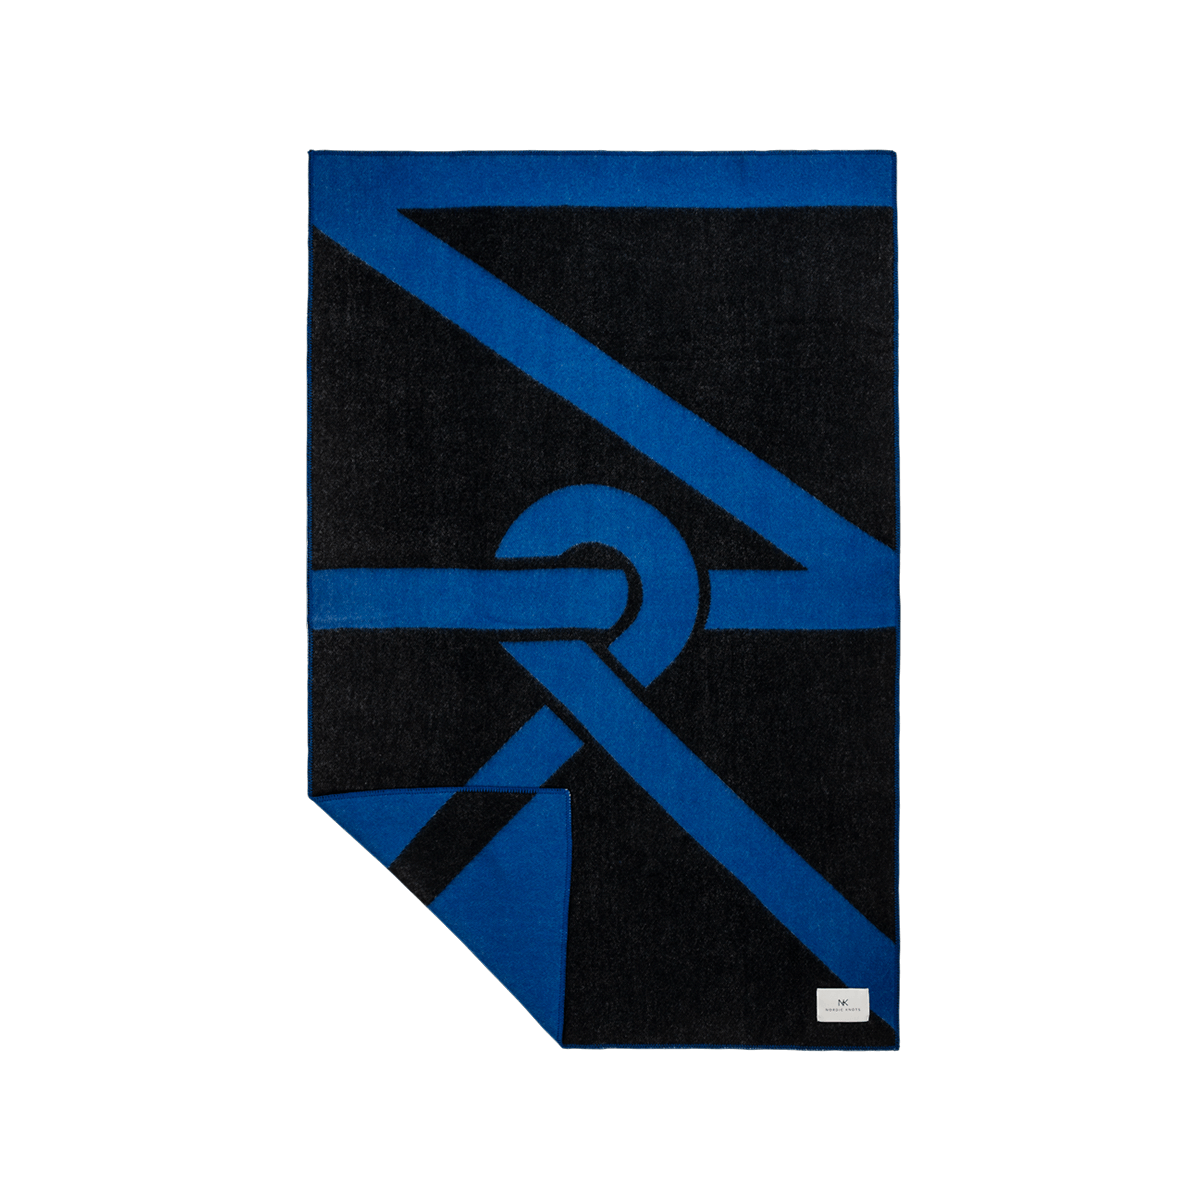 Product image of wool blanket NK, a bright blue blanket with the Nordic Knots logo as a pattern in black.